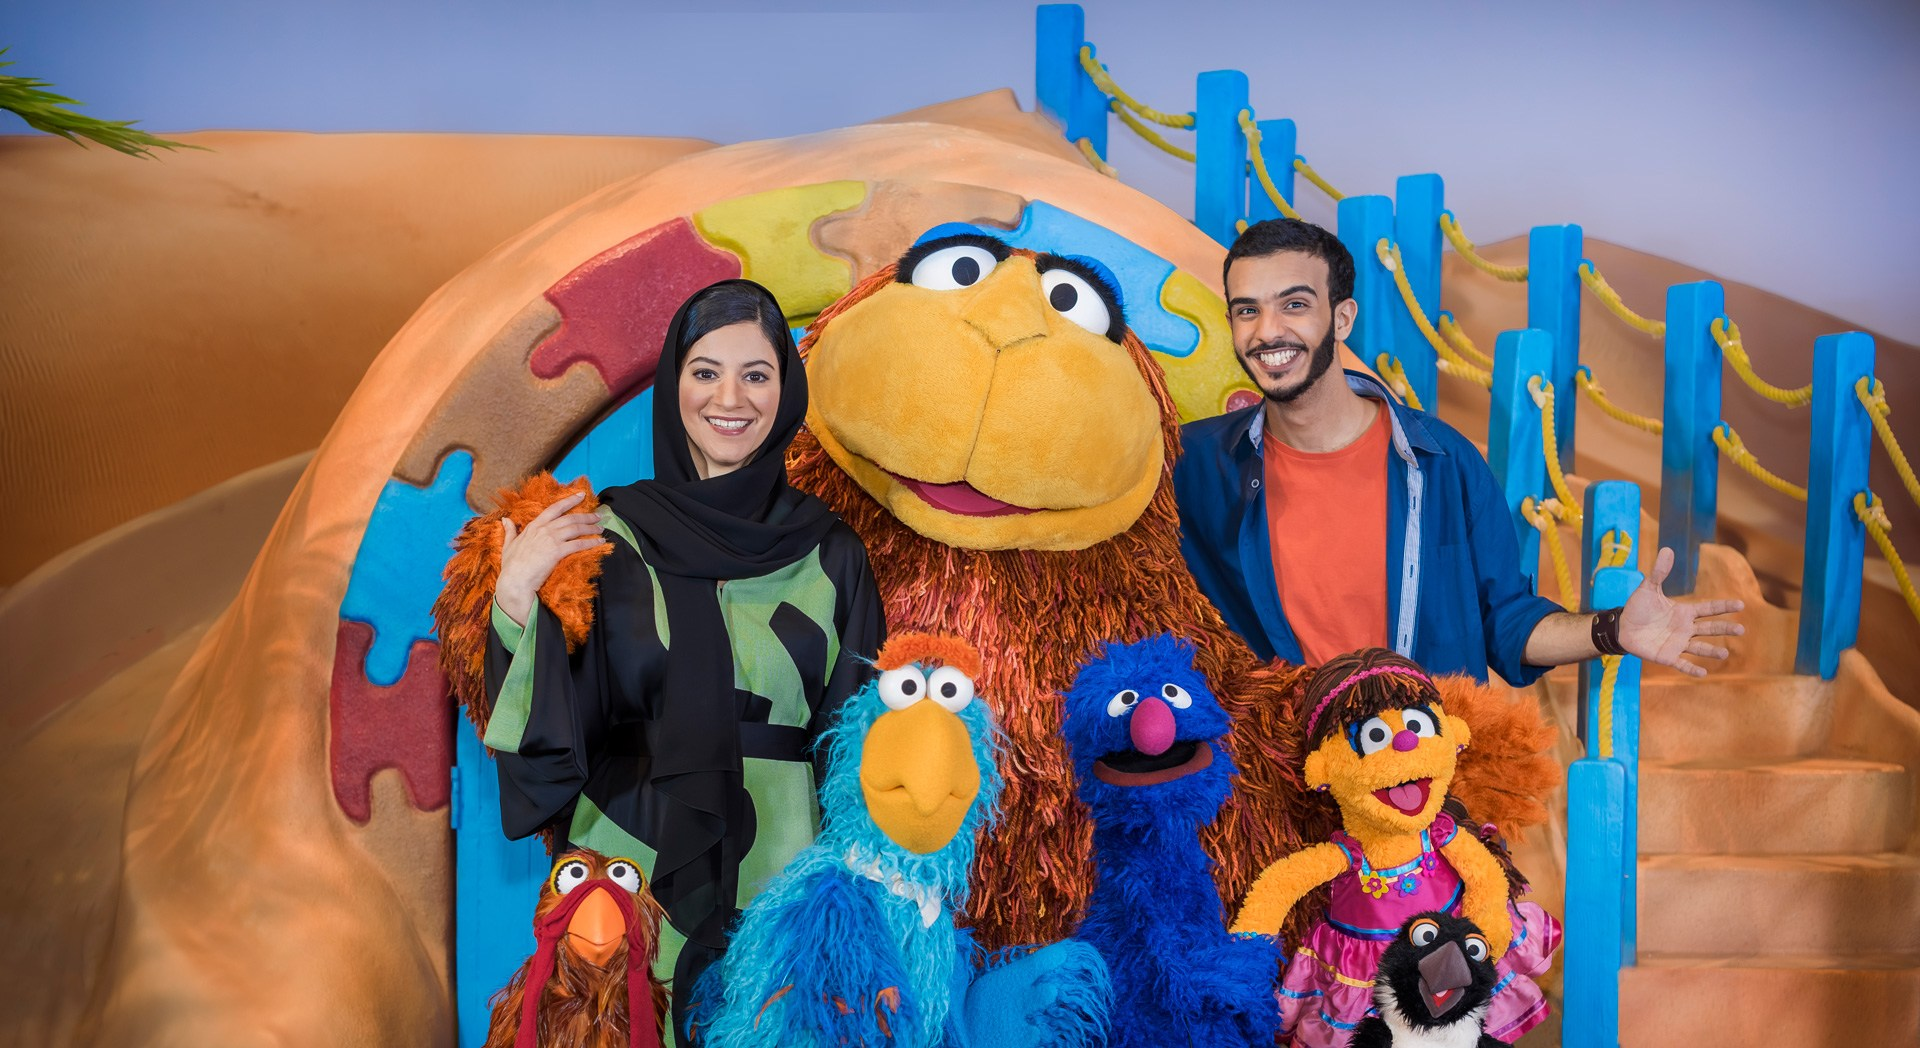 Iftah Ya Simsim unveils full cast to kick off its in-studio production phase in Abu Dhabi